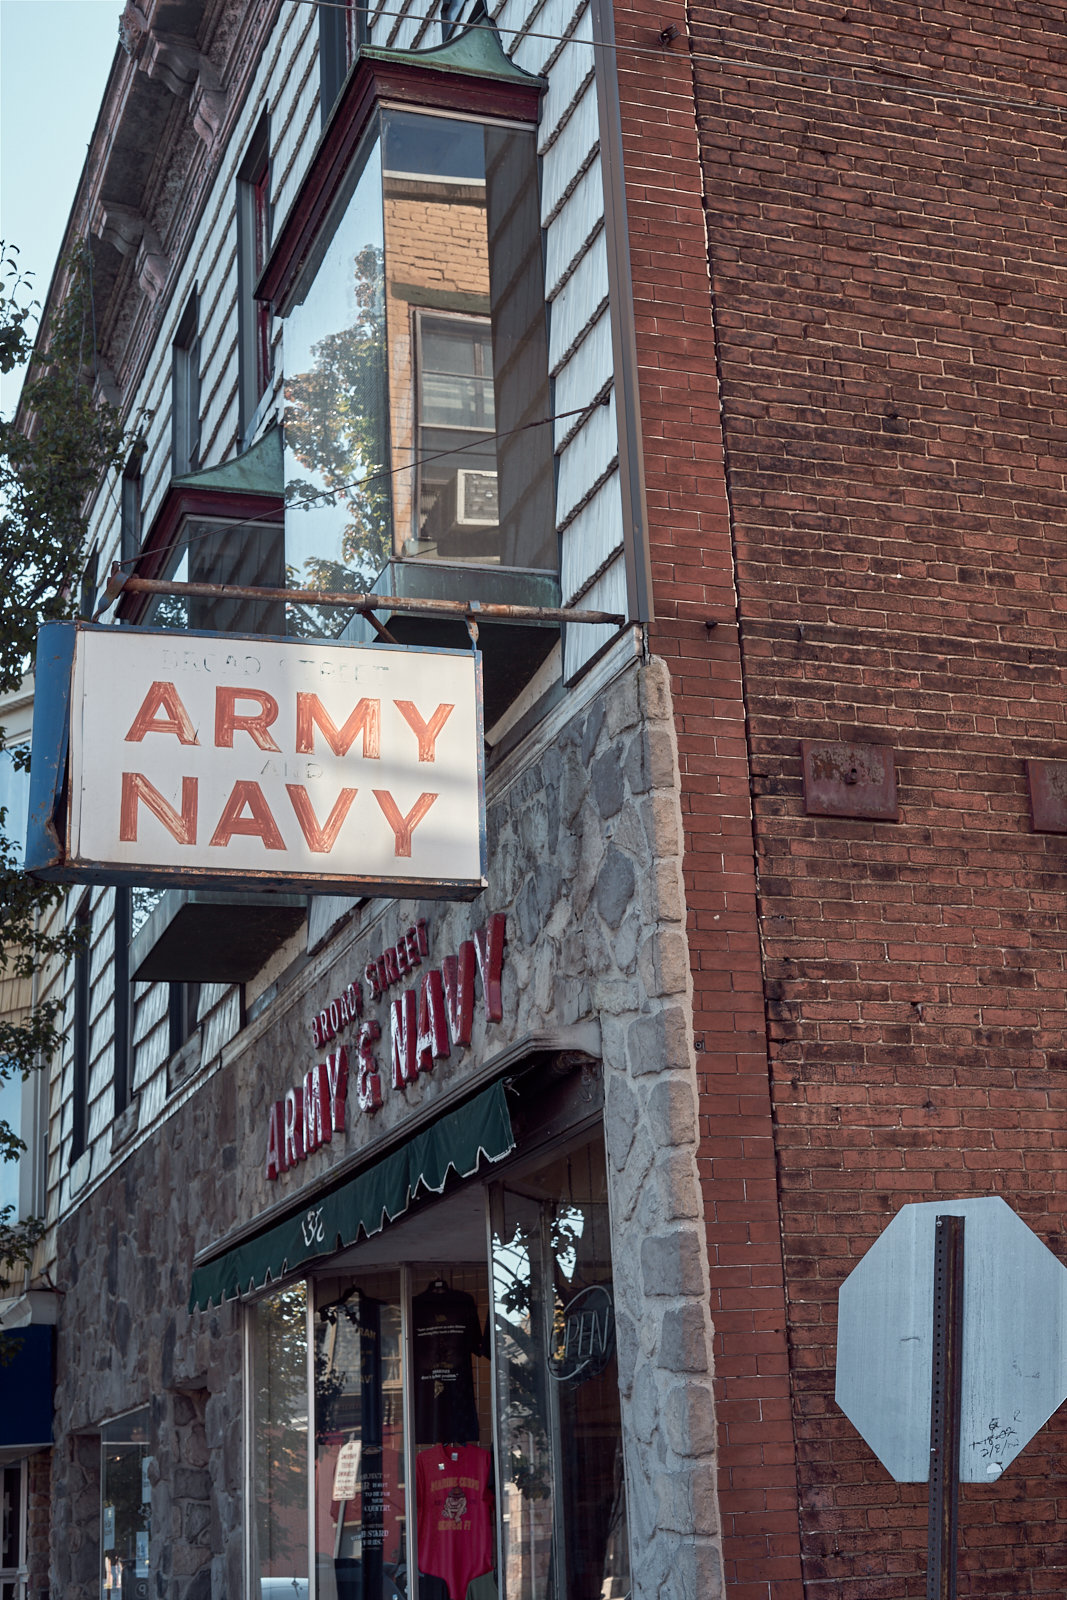 Broad Street Army Navy Store - Harrisburg, Pennsylvania - fine art street photography